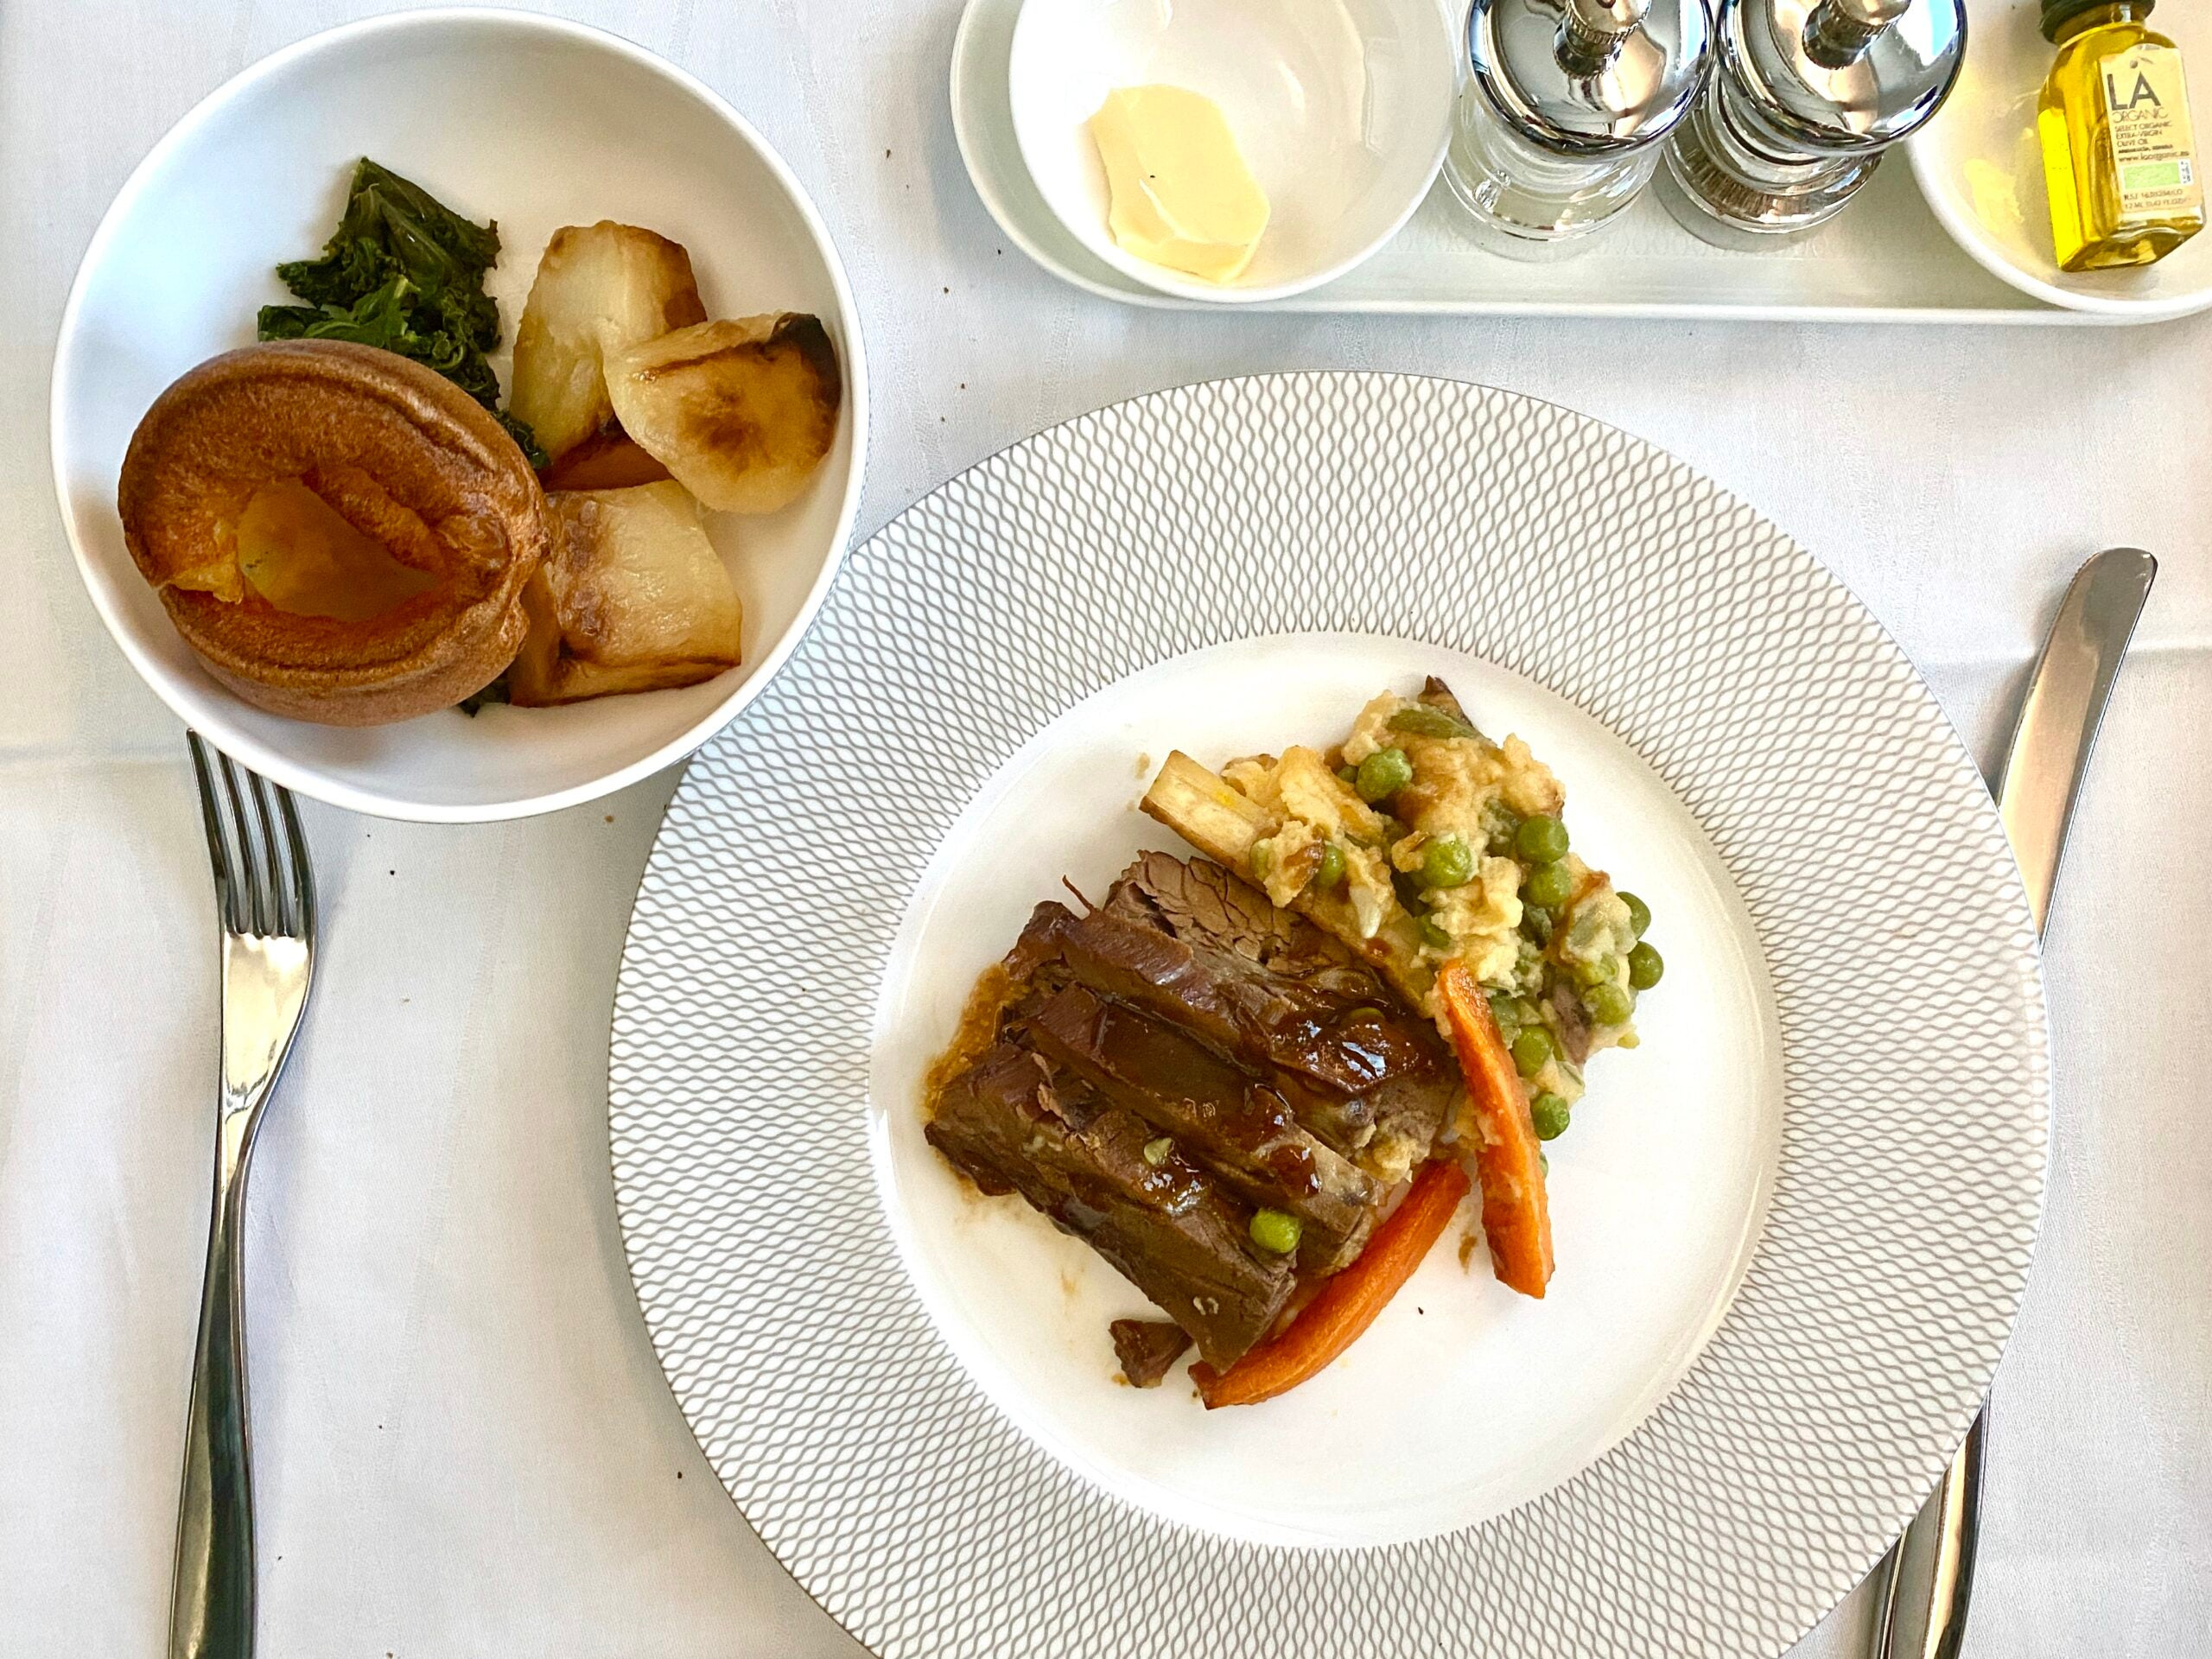 I flew to London just to try a new limited-time inflight meal. British Airways almost didn't deliver - The Points Guy